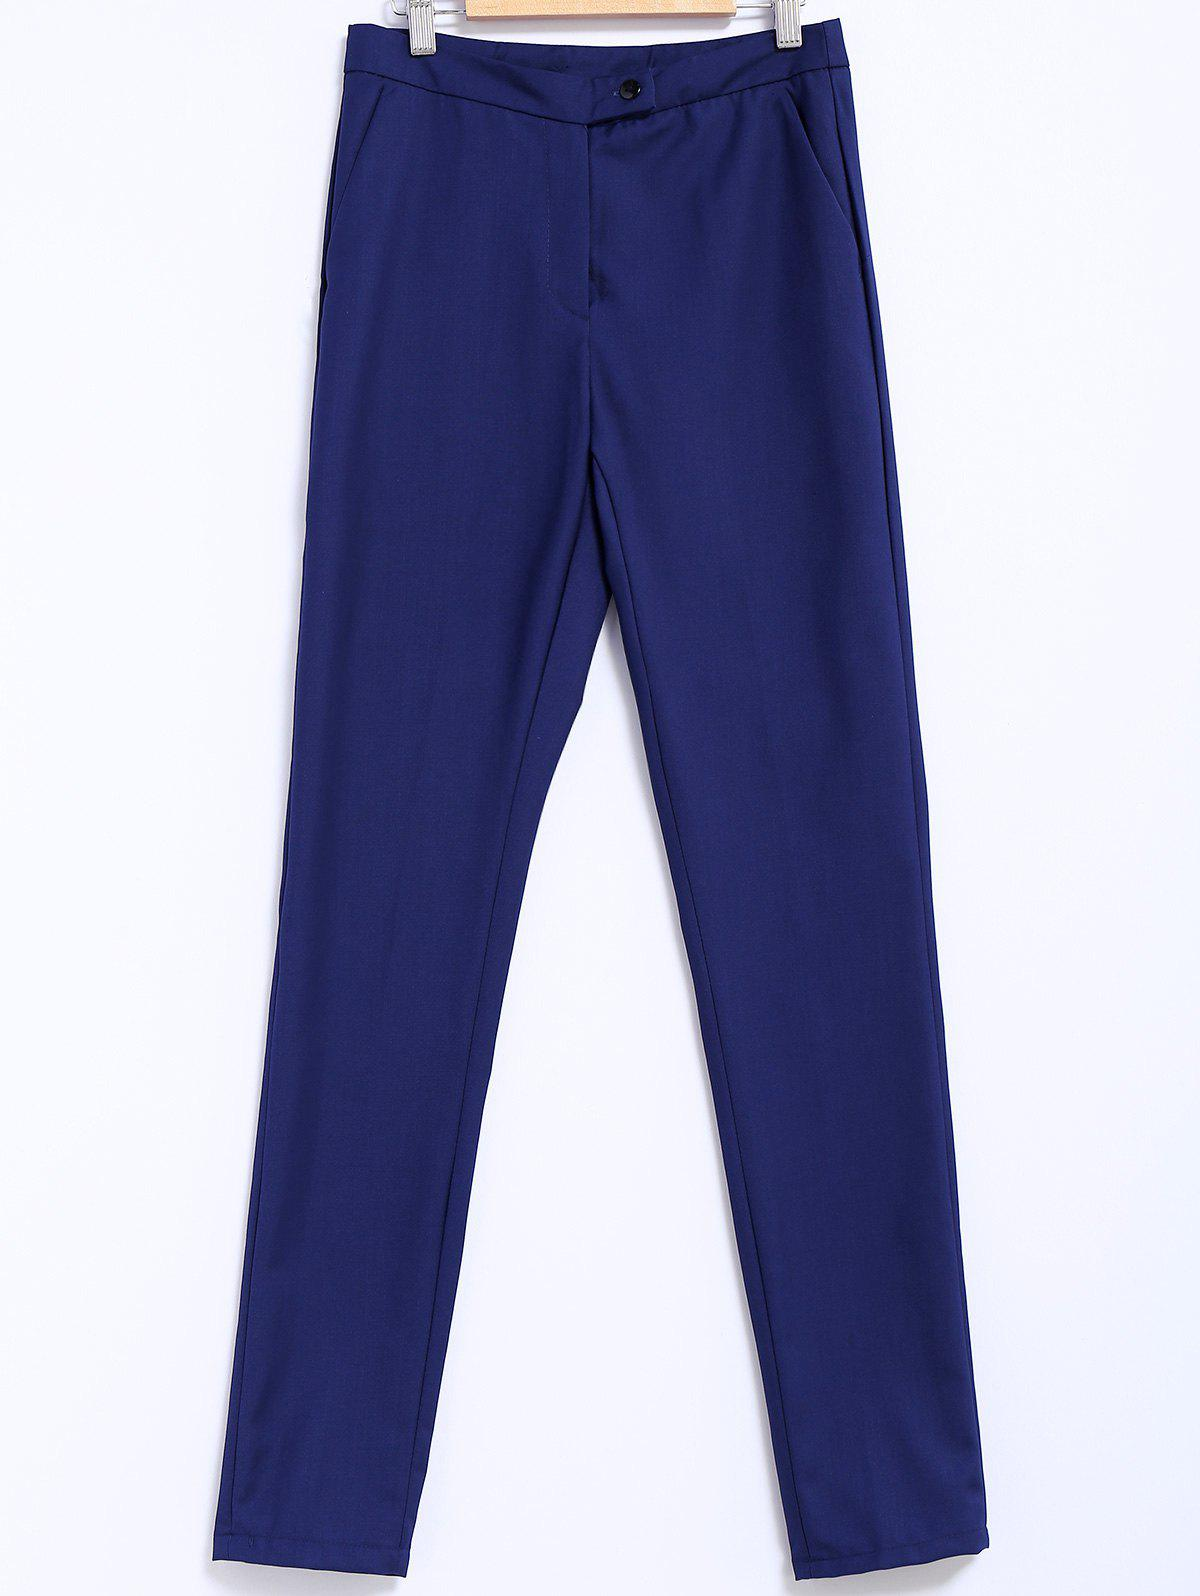 Simple Style Narrow Feet Solid Color High Waisted Slimming Women's Pants - BLUE M